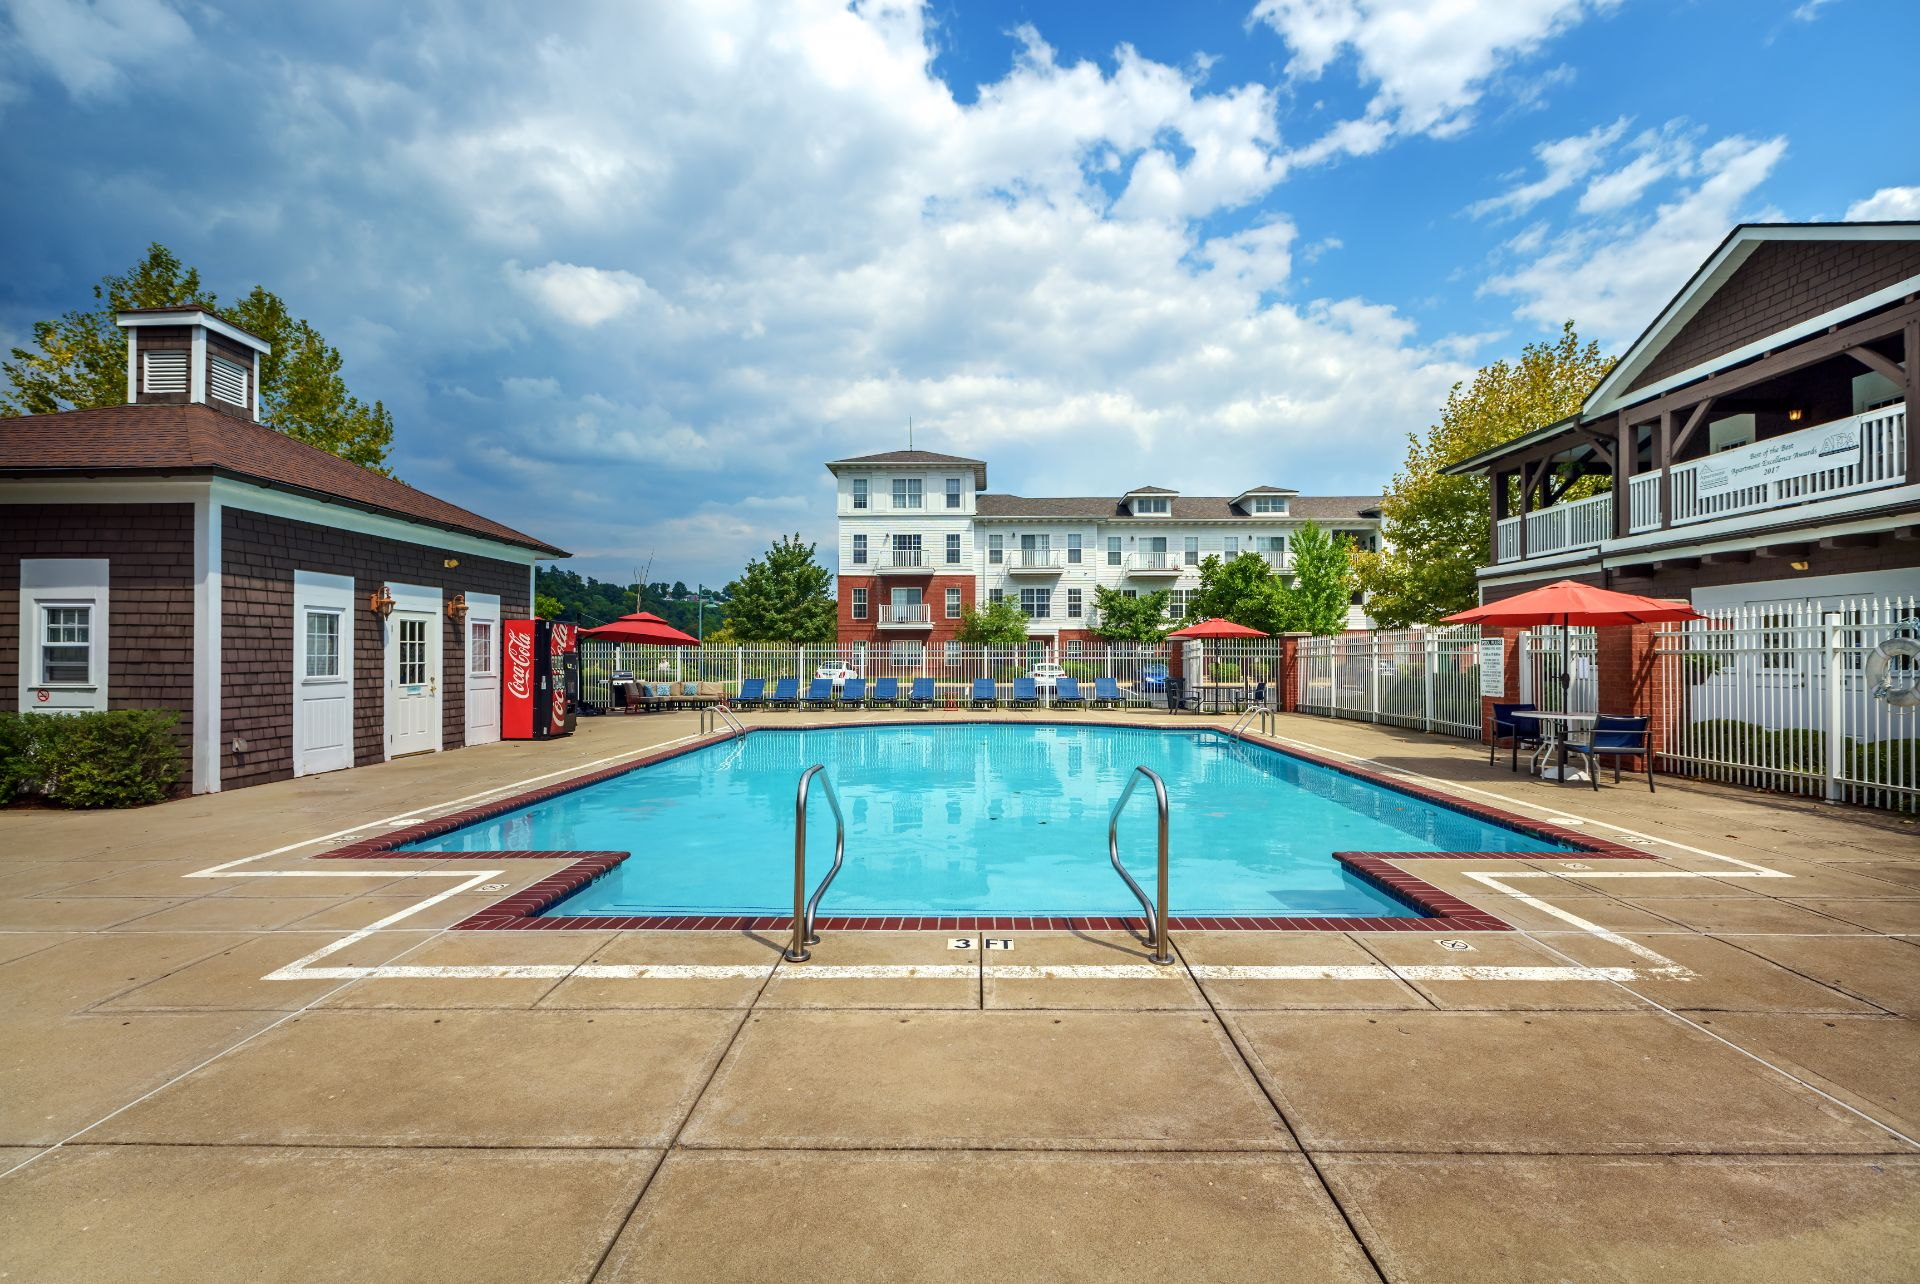 The Waterfront Apartments and Townhomes with a Pool and Sundeck,  611 E. Waterfront Drive, Munhall, PA 15120